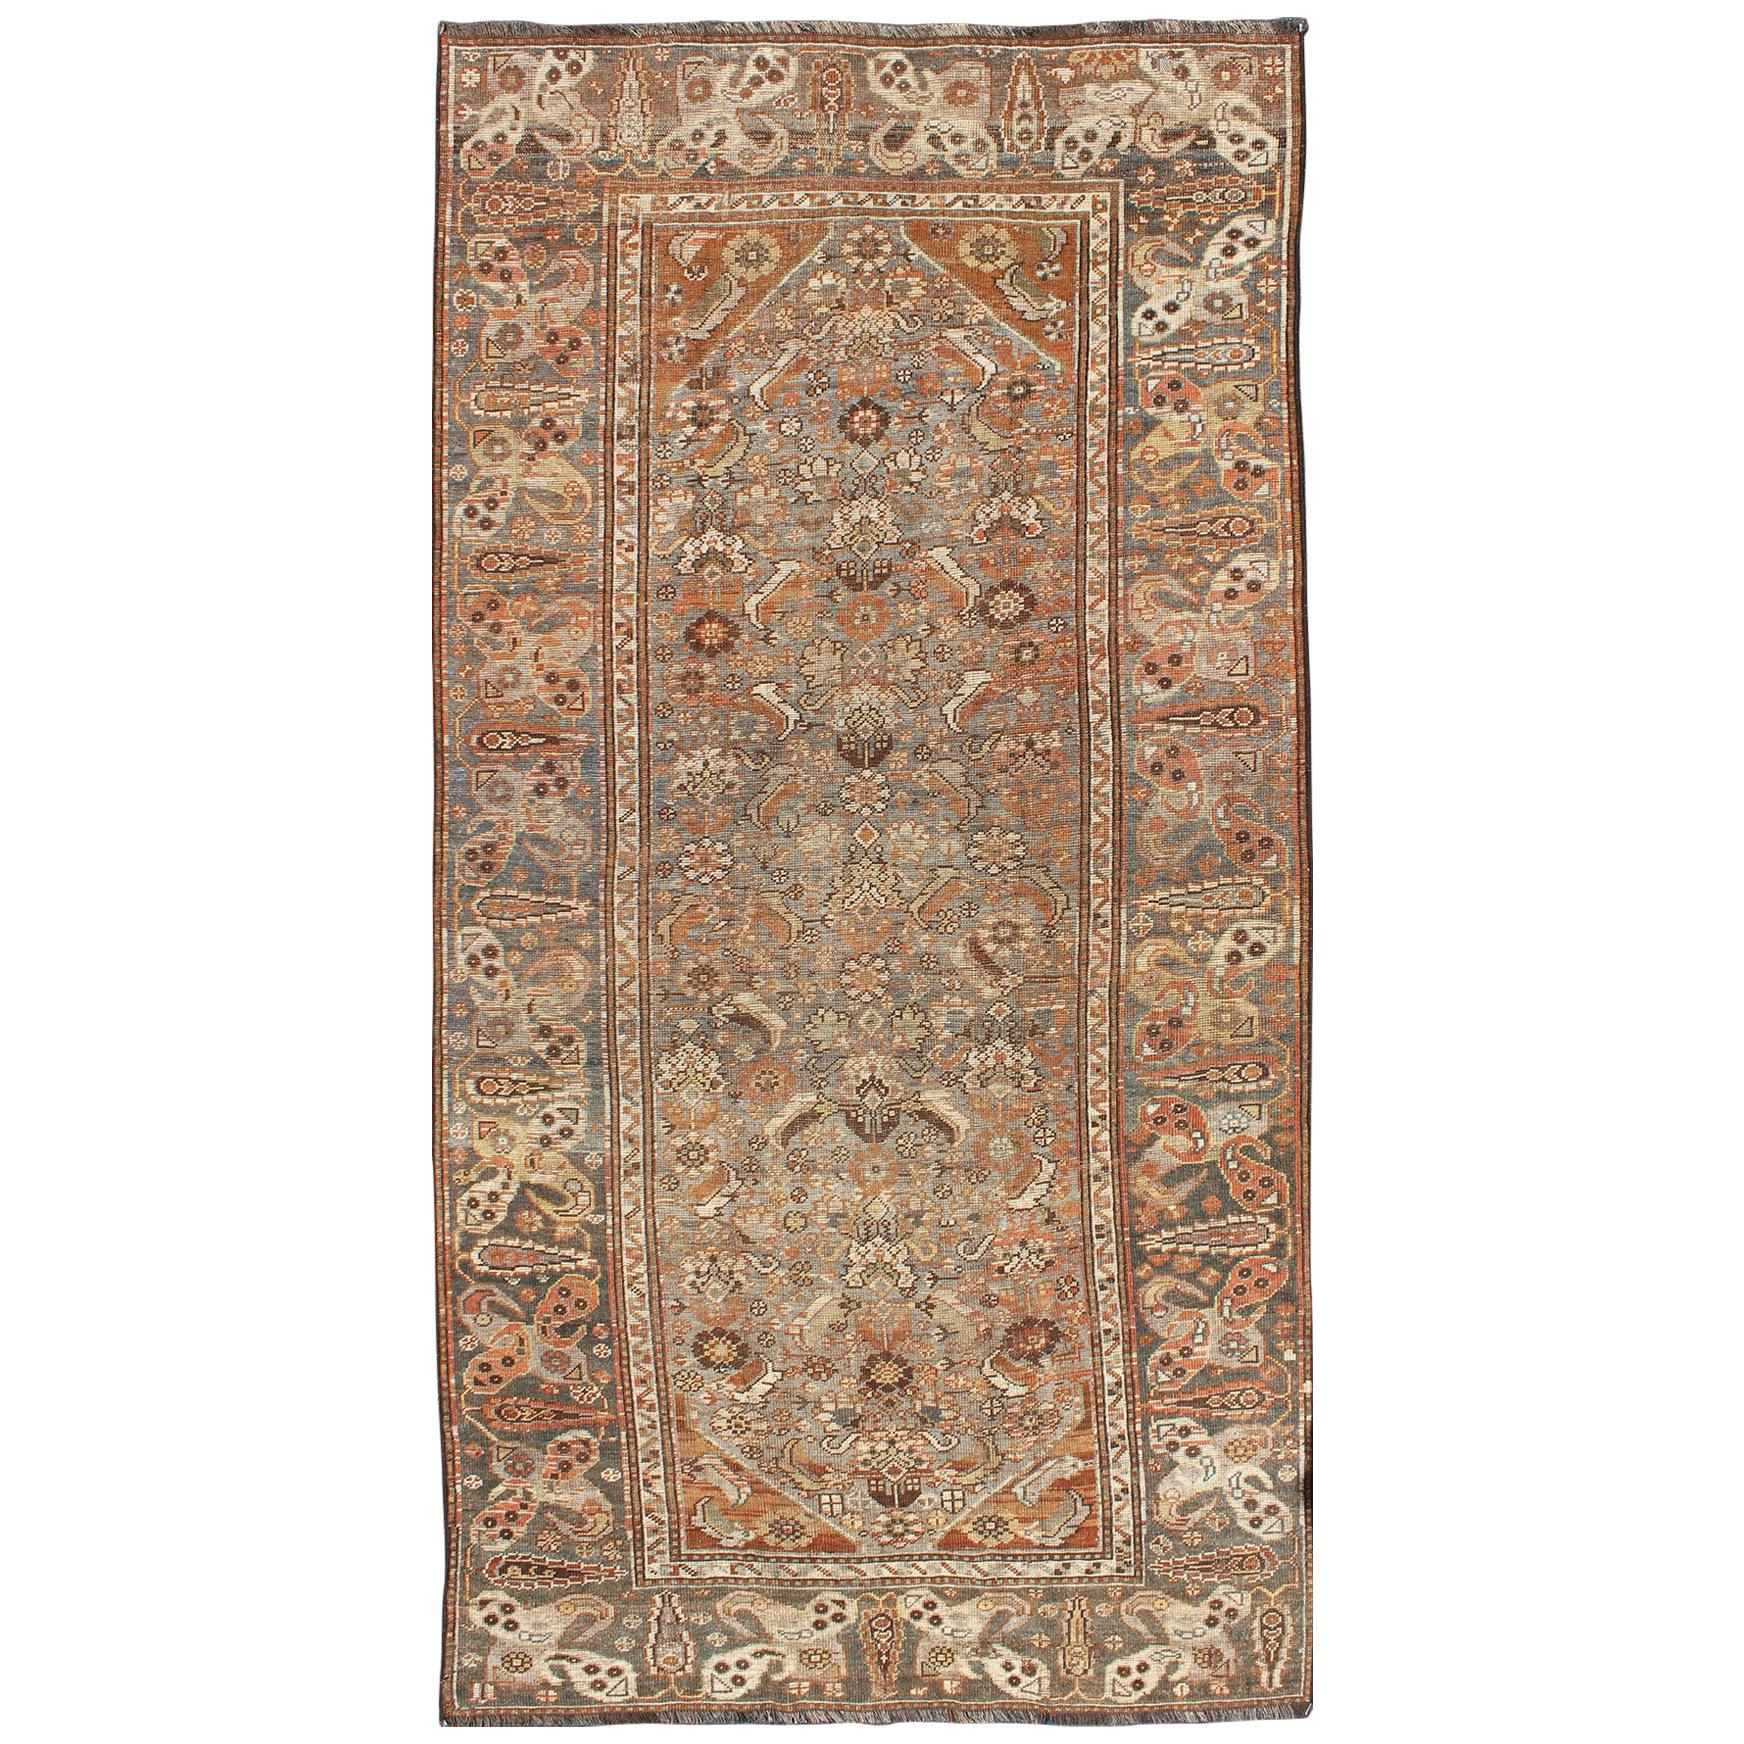 Antique Persian Qashqai Small Gallery Rug with Expansive Sub-Geometric Design